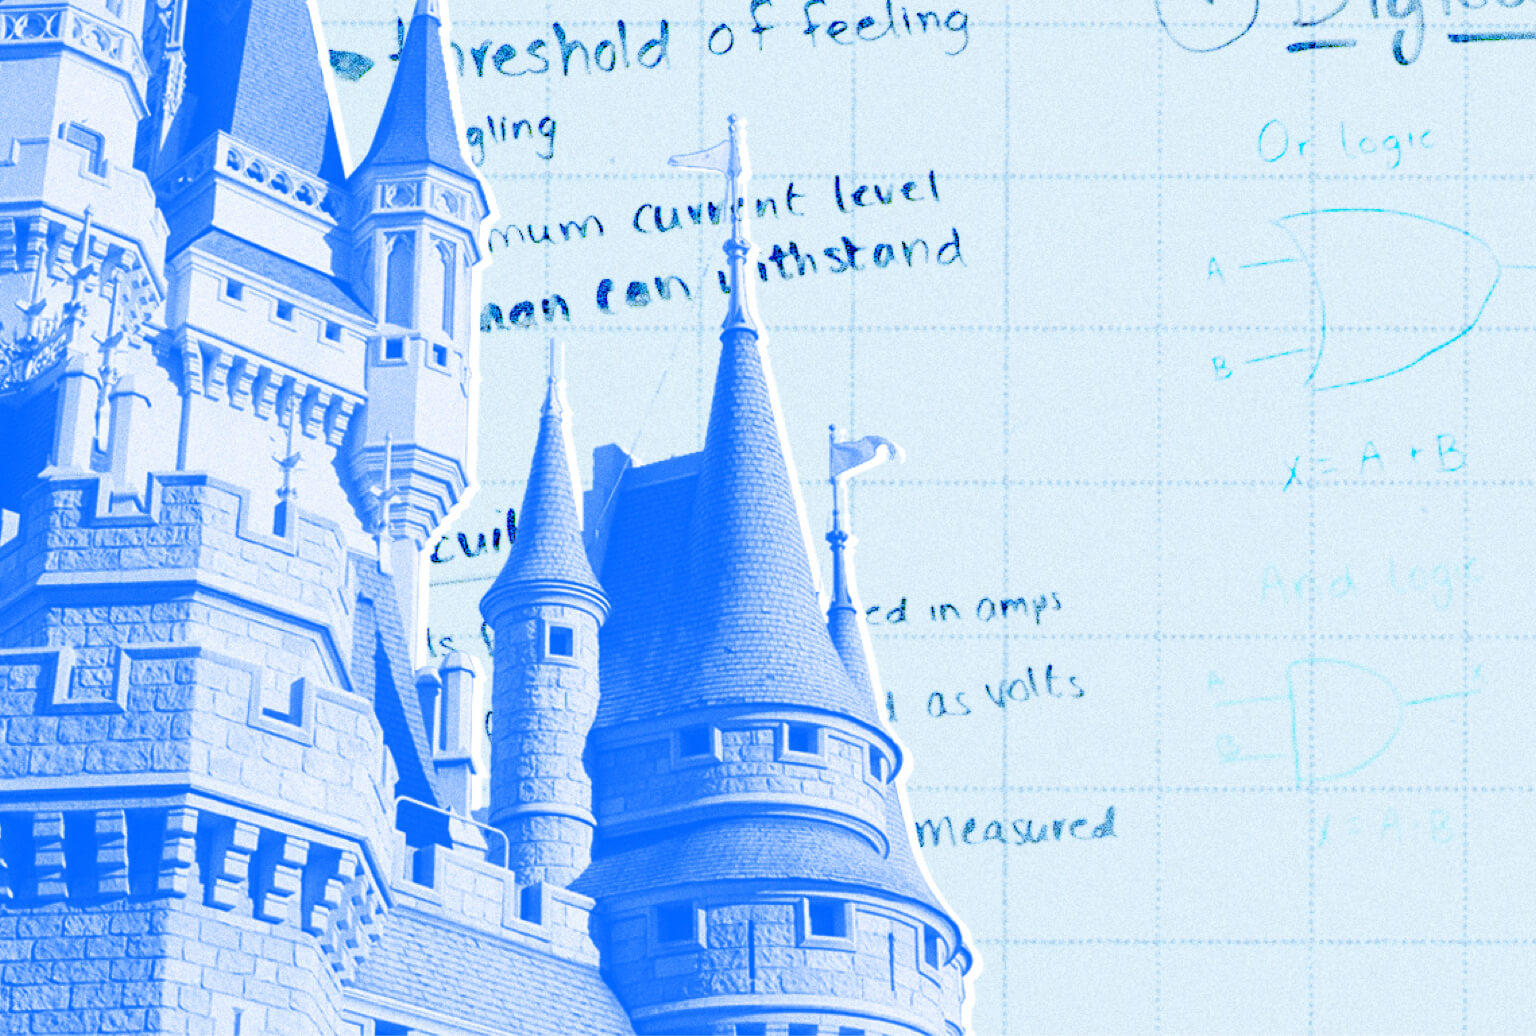 Castle rooftop and spires superimposed over a graph paper background.